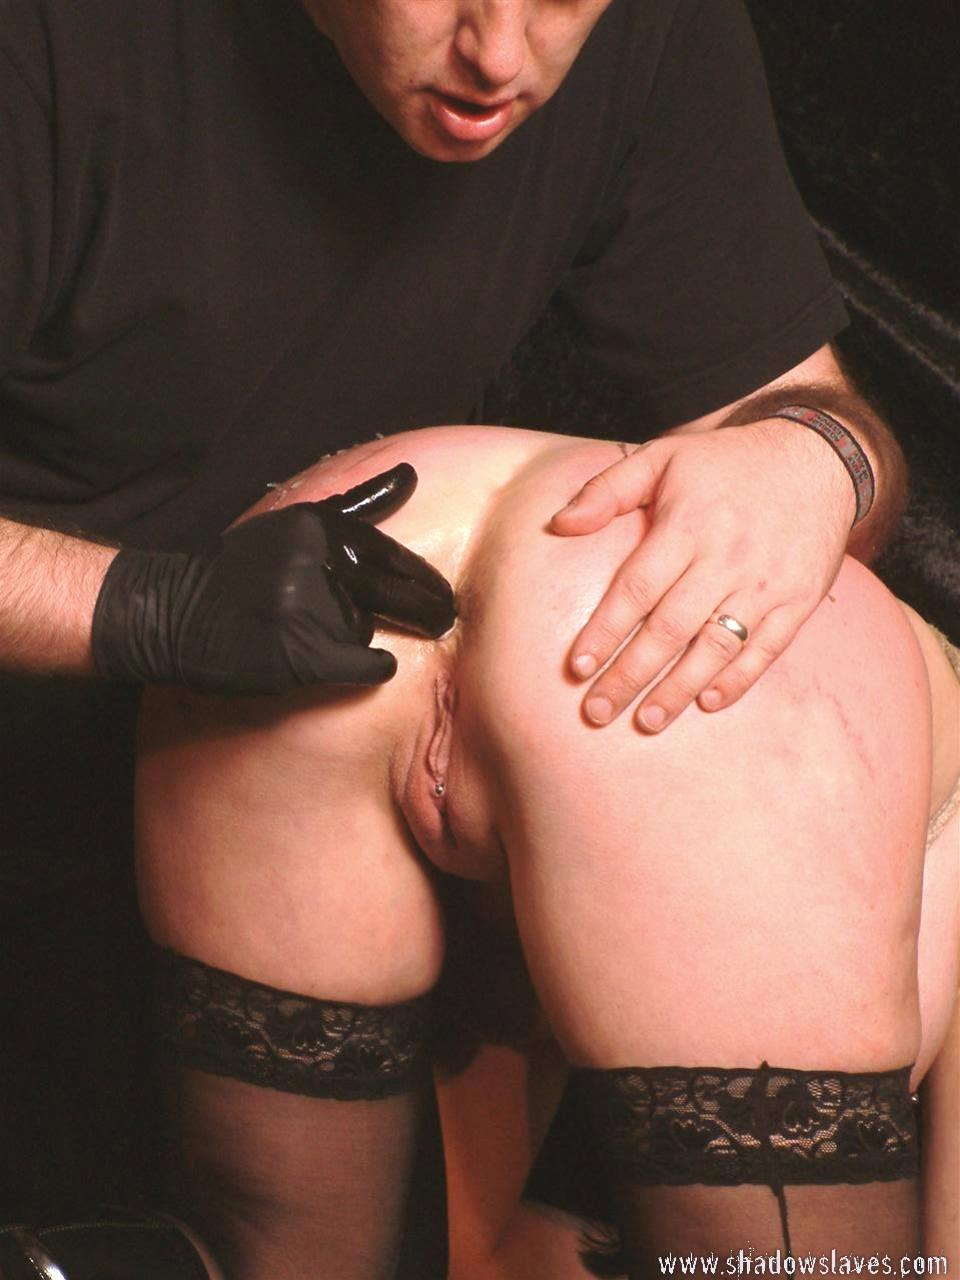 Amateur Solo Anal Fisting